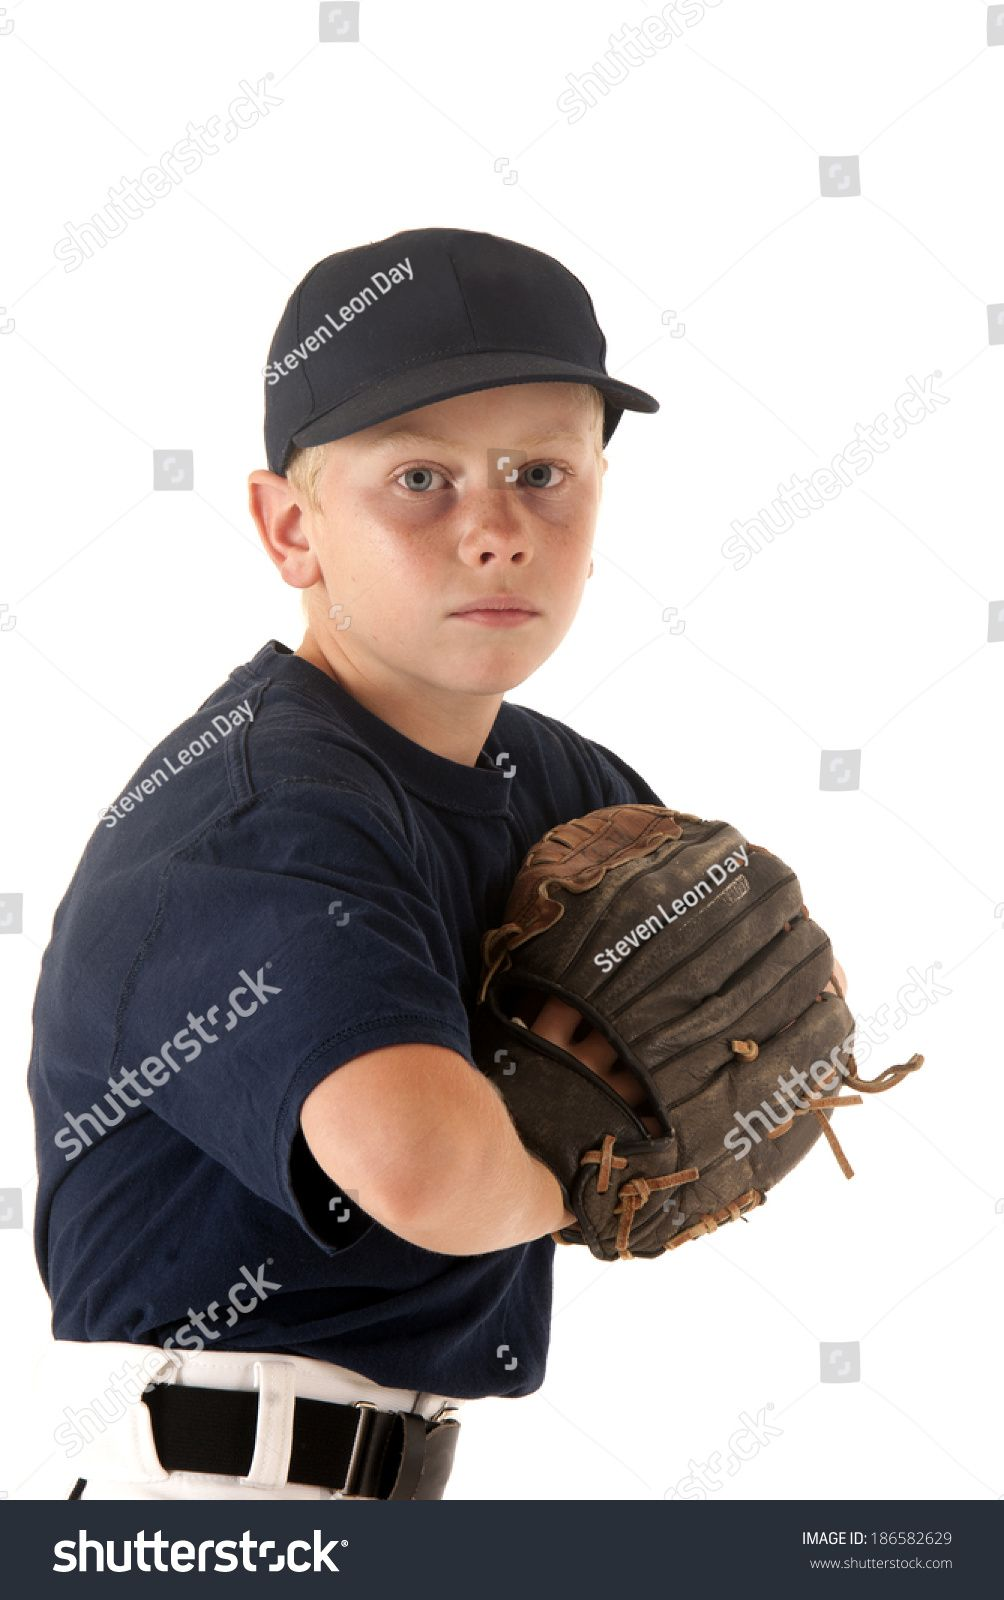 Young Baseball Player With Hand In Glove Ad Ad Baseball Young Player Glove In 2020 Baseball Players Players Mockup Design